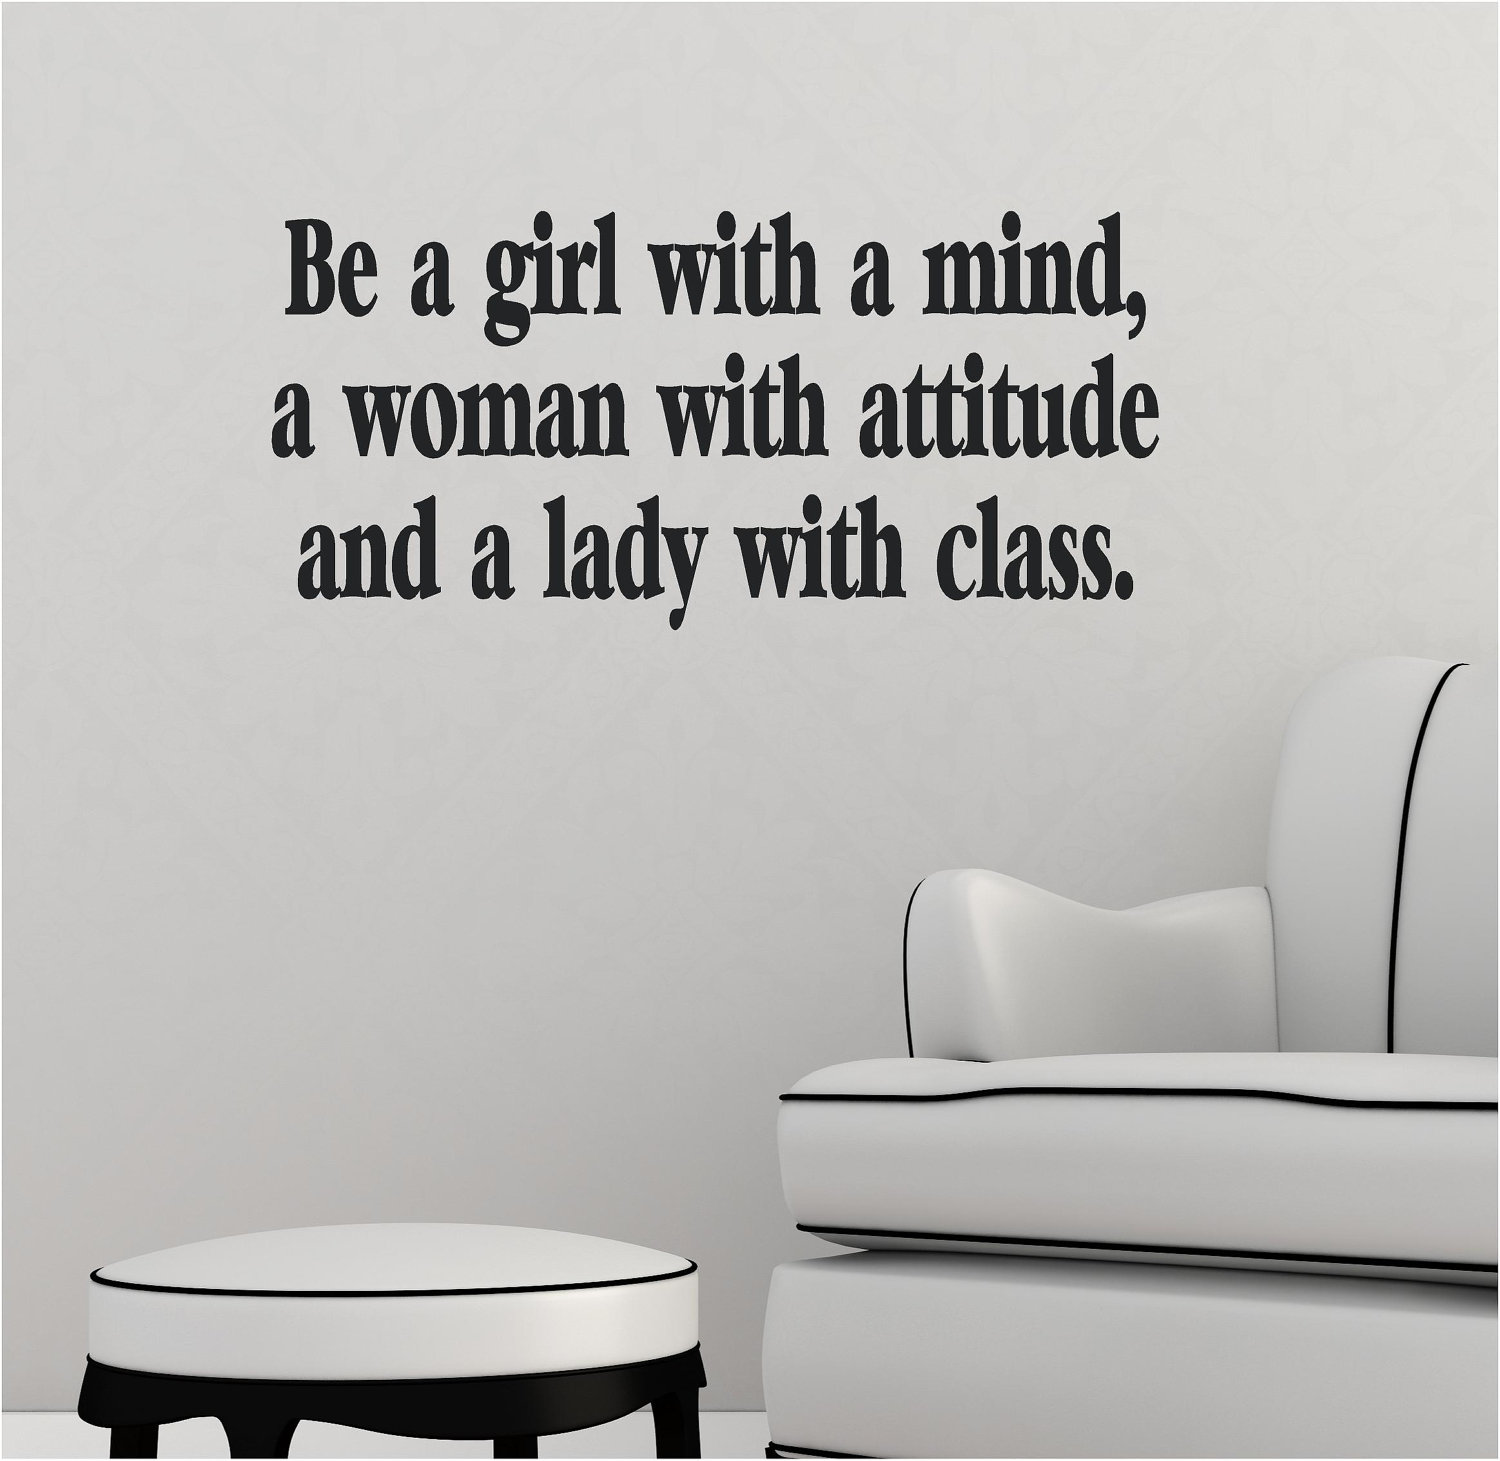 Quotes about Lady with class (19 quotes)